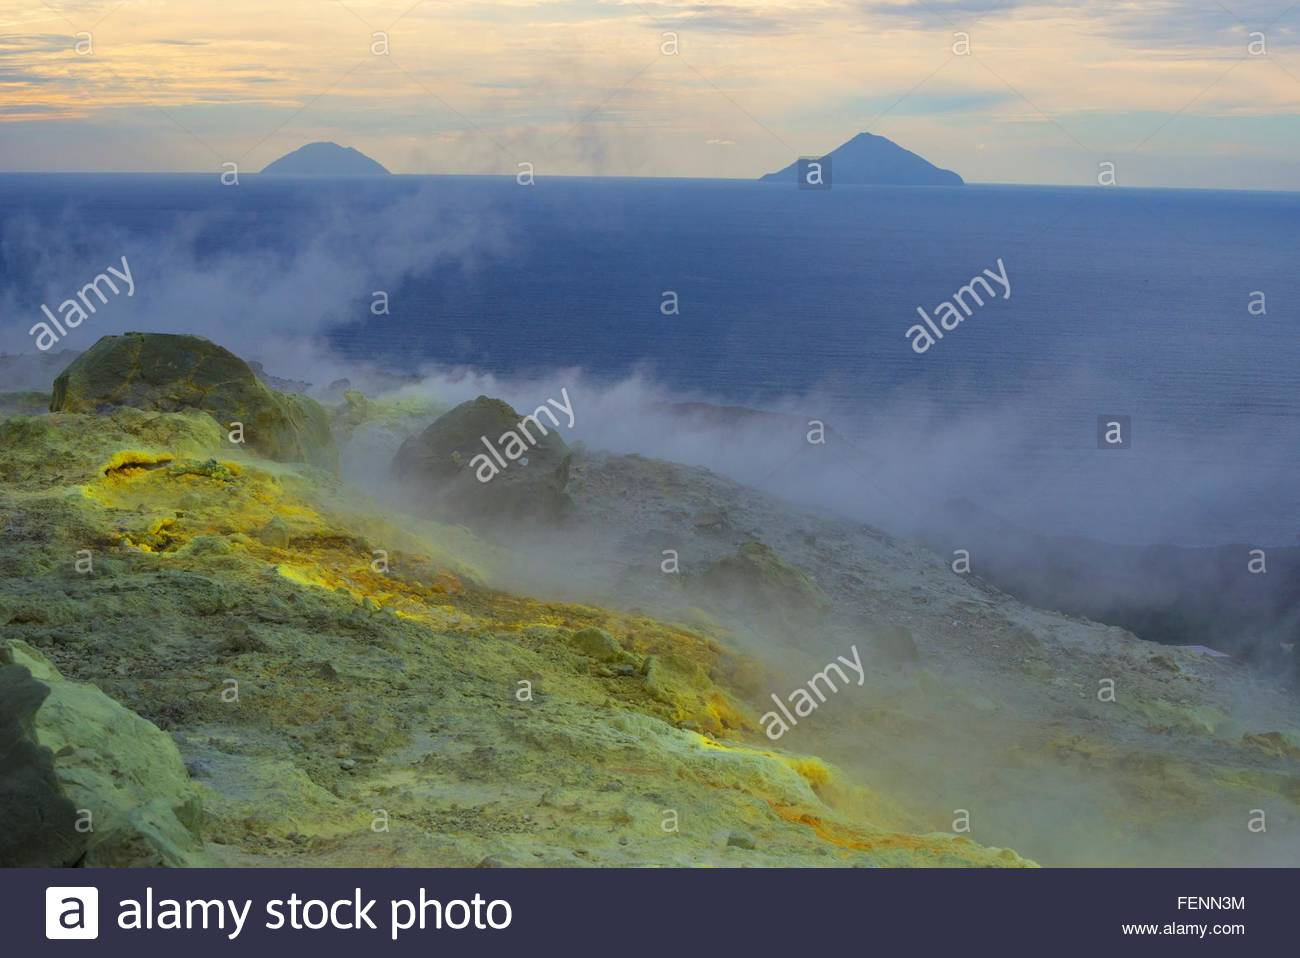 Sulphur and fumarole smoke at Gran Cratere and view of islands, Vulcano Island, Aeolian Islands, Sicily, Italy - Stock Image